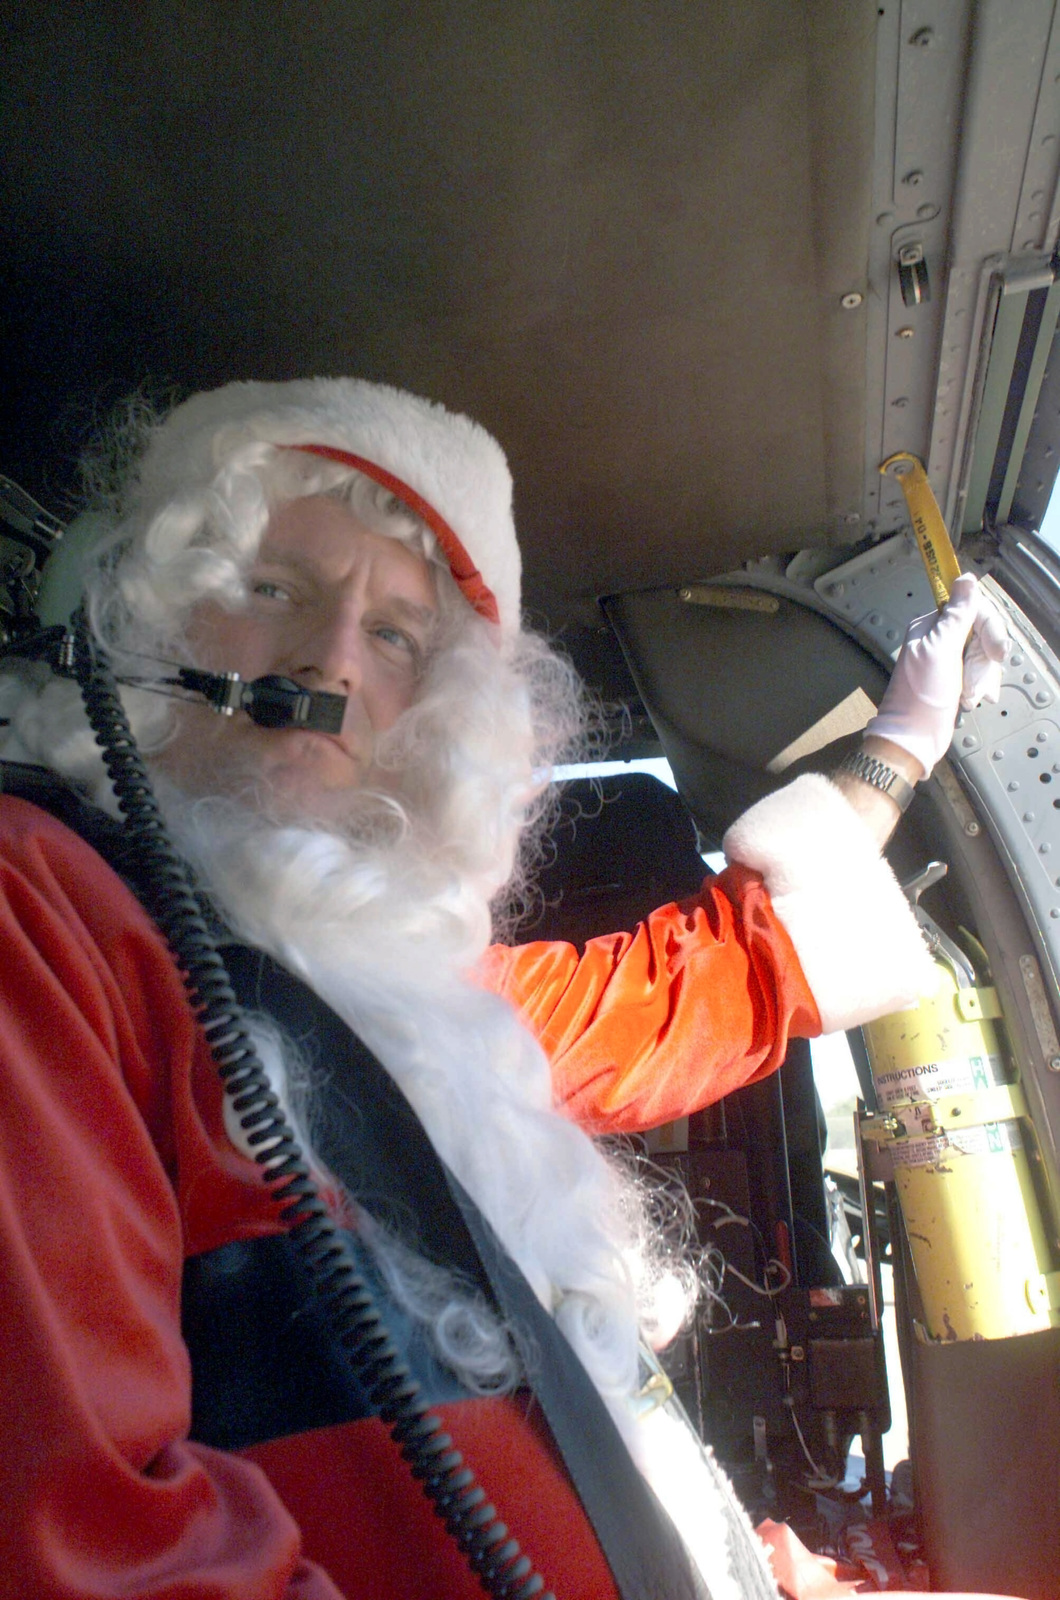 US Air Force (USAF) Colonel (COL) Paul G. Schafer, the 355th Wing Commander (WC) poses for a photograph dressed as Santa Claus aboard a US Army (USA) UH-60 Black Hawk helicopter